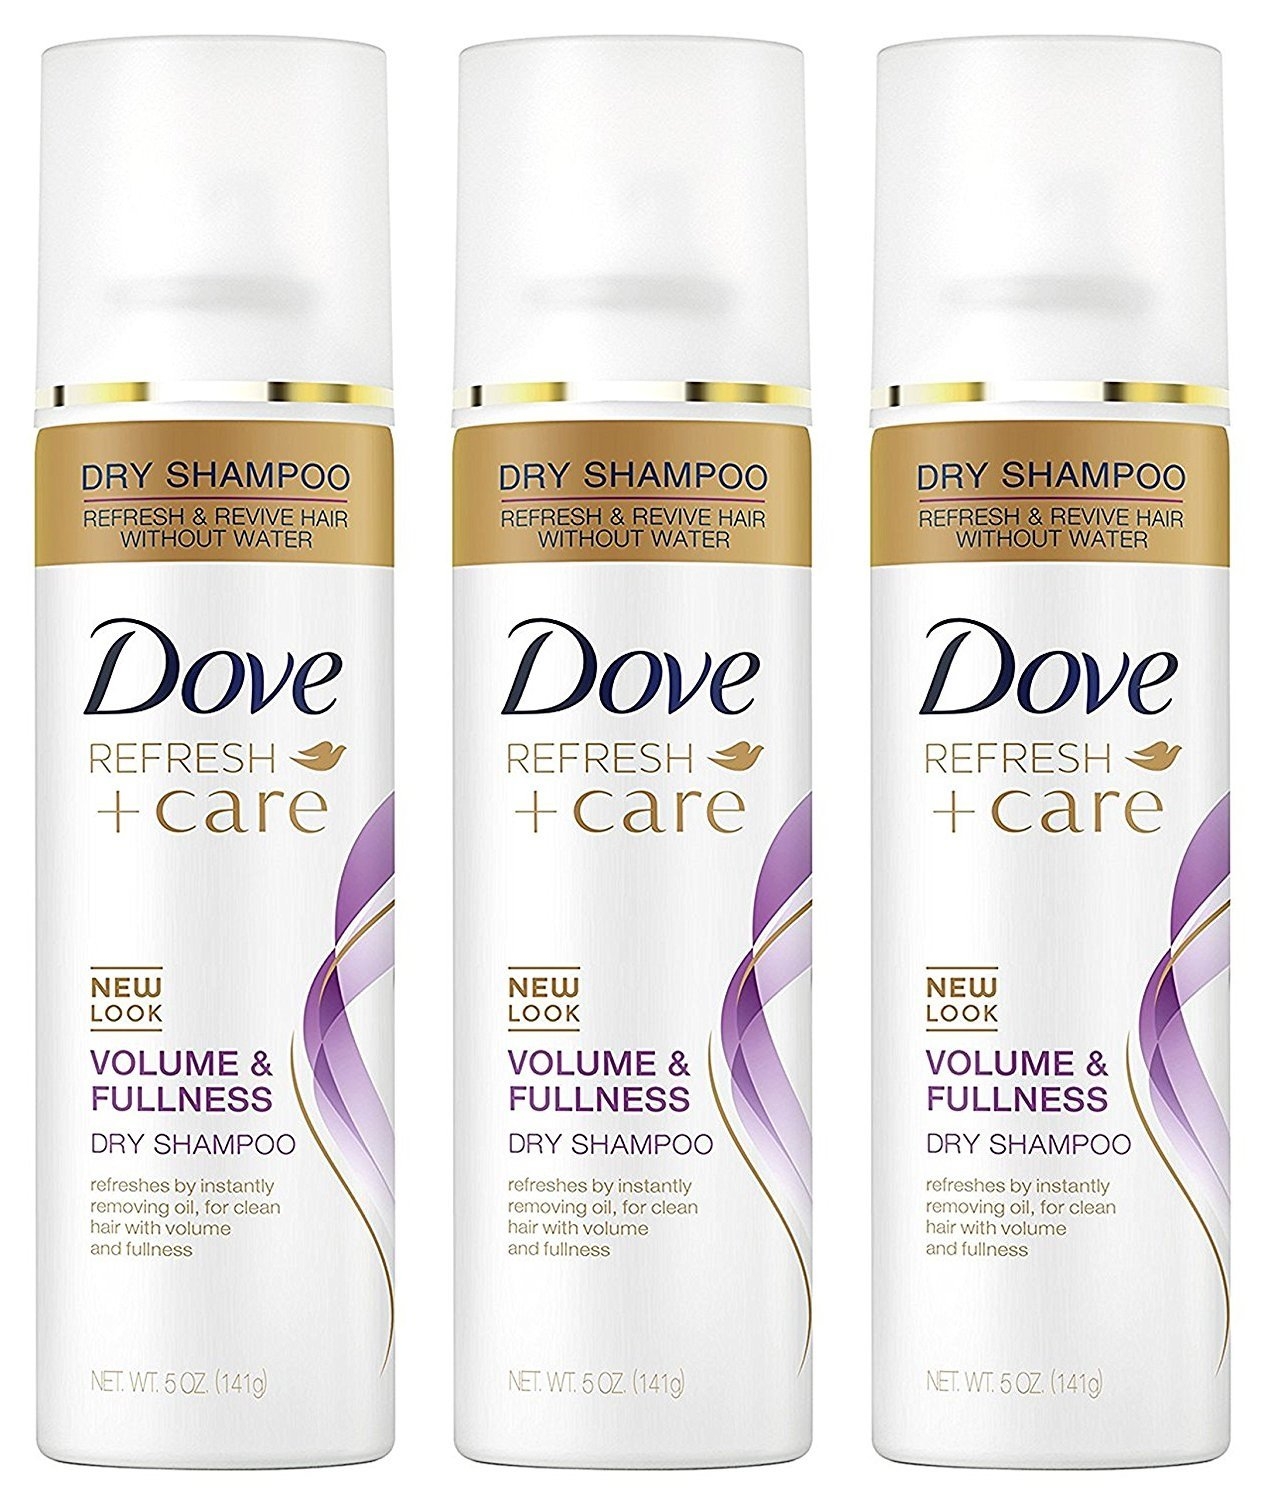 Dove Dry Shampoo Refresh and Care Volume and Fullness, 5 Ounces, 3 Pack